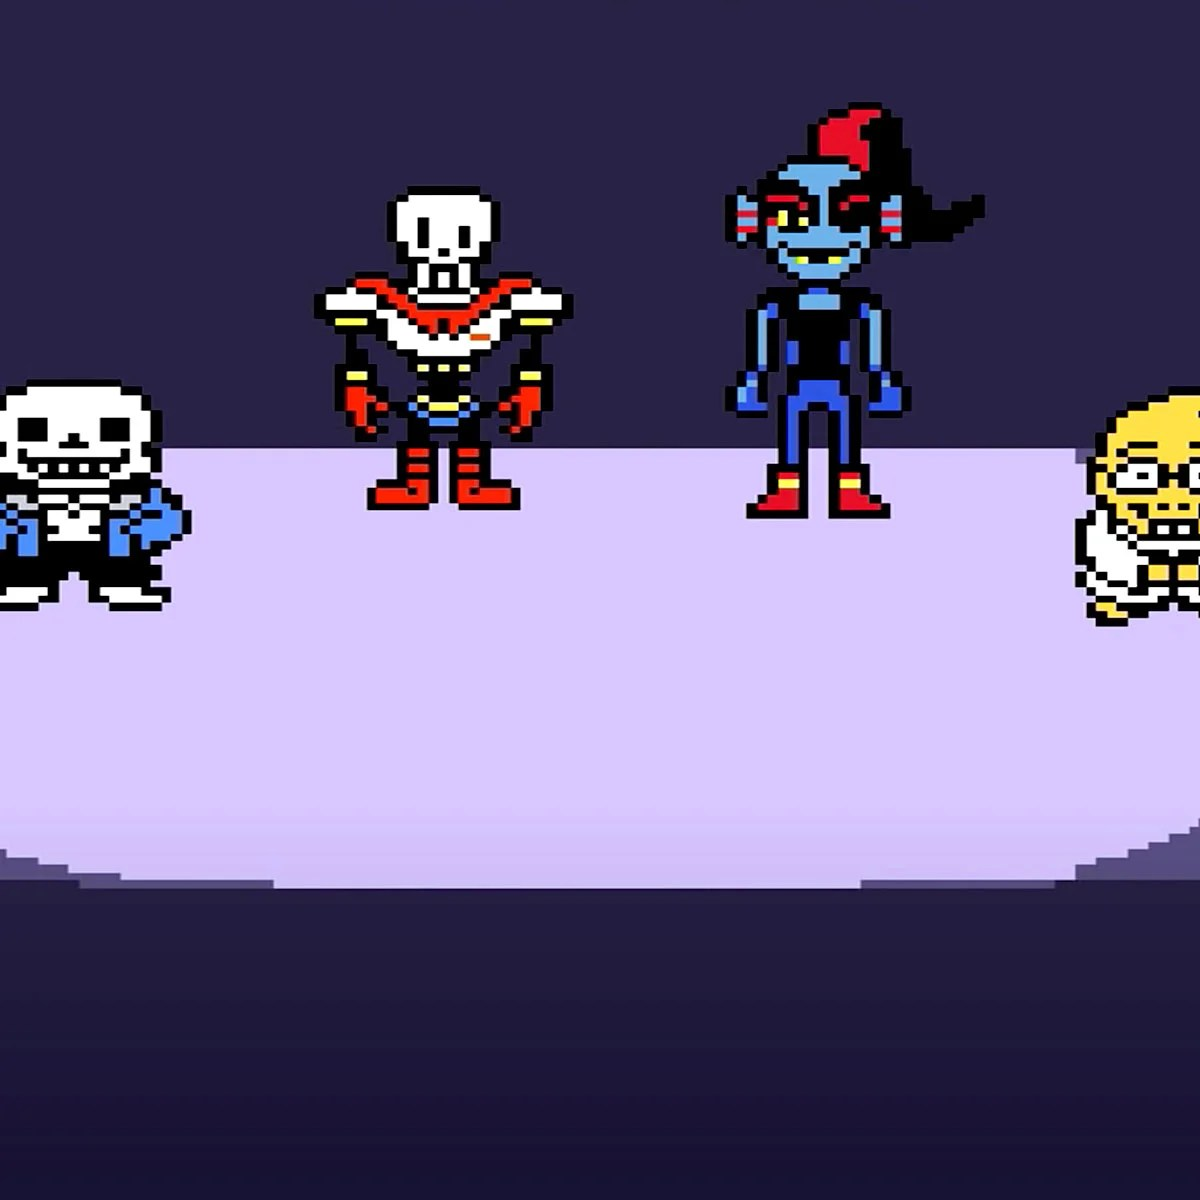 By downloading playground sessions (free), and connecting your midi keyboard, you will be able to practice sweet home alabama by lynyrd … Play His Theme Undertale Music Sheet Play On Virtual Piano